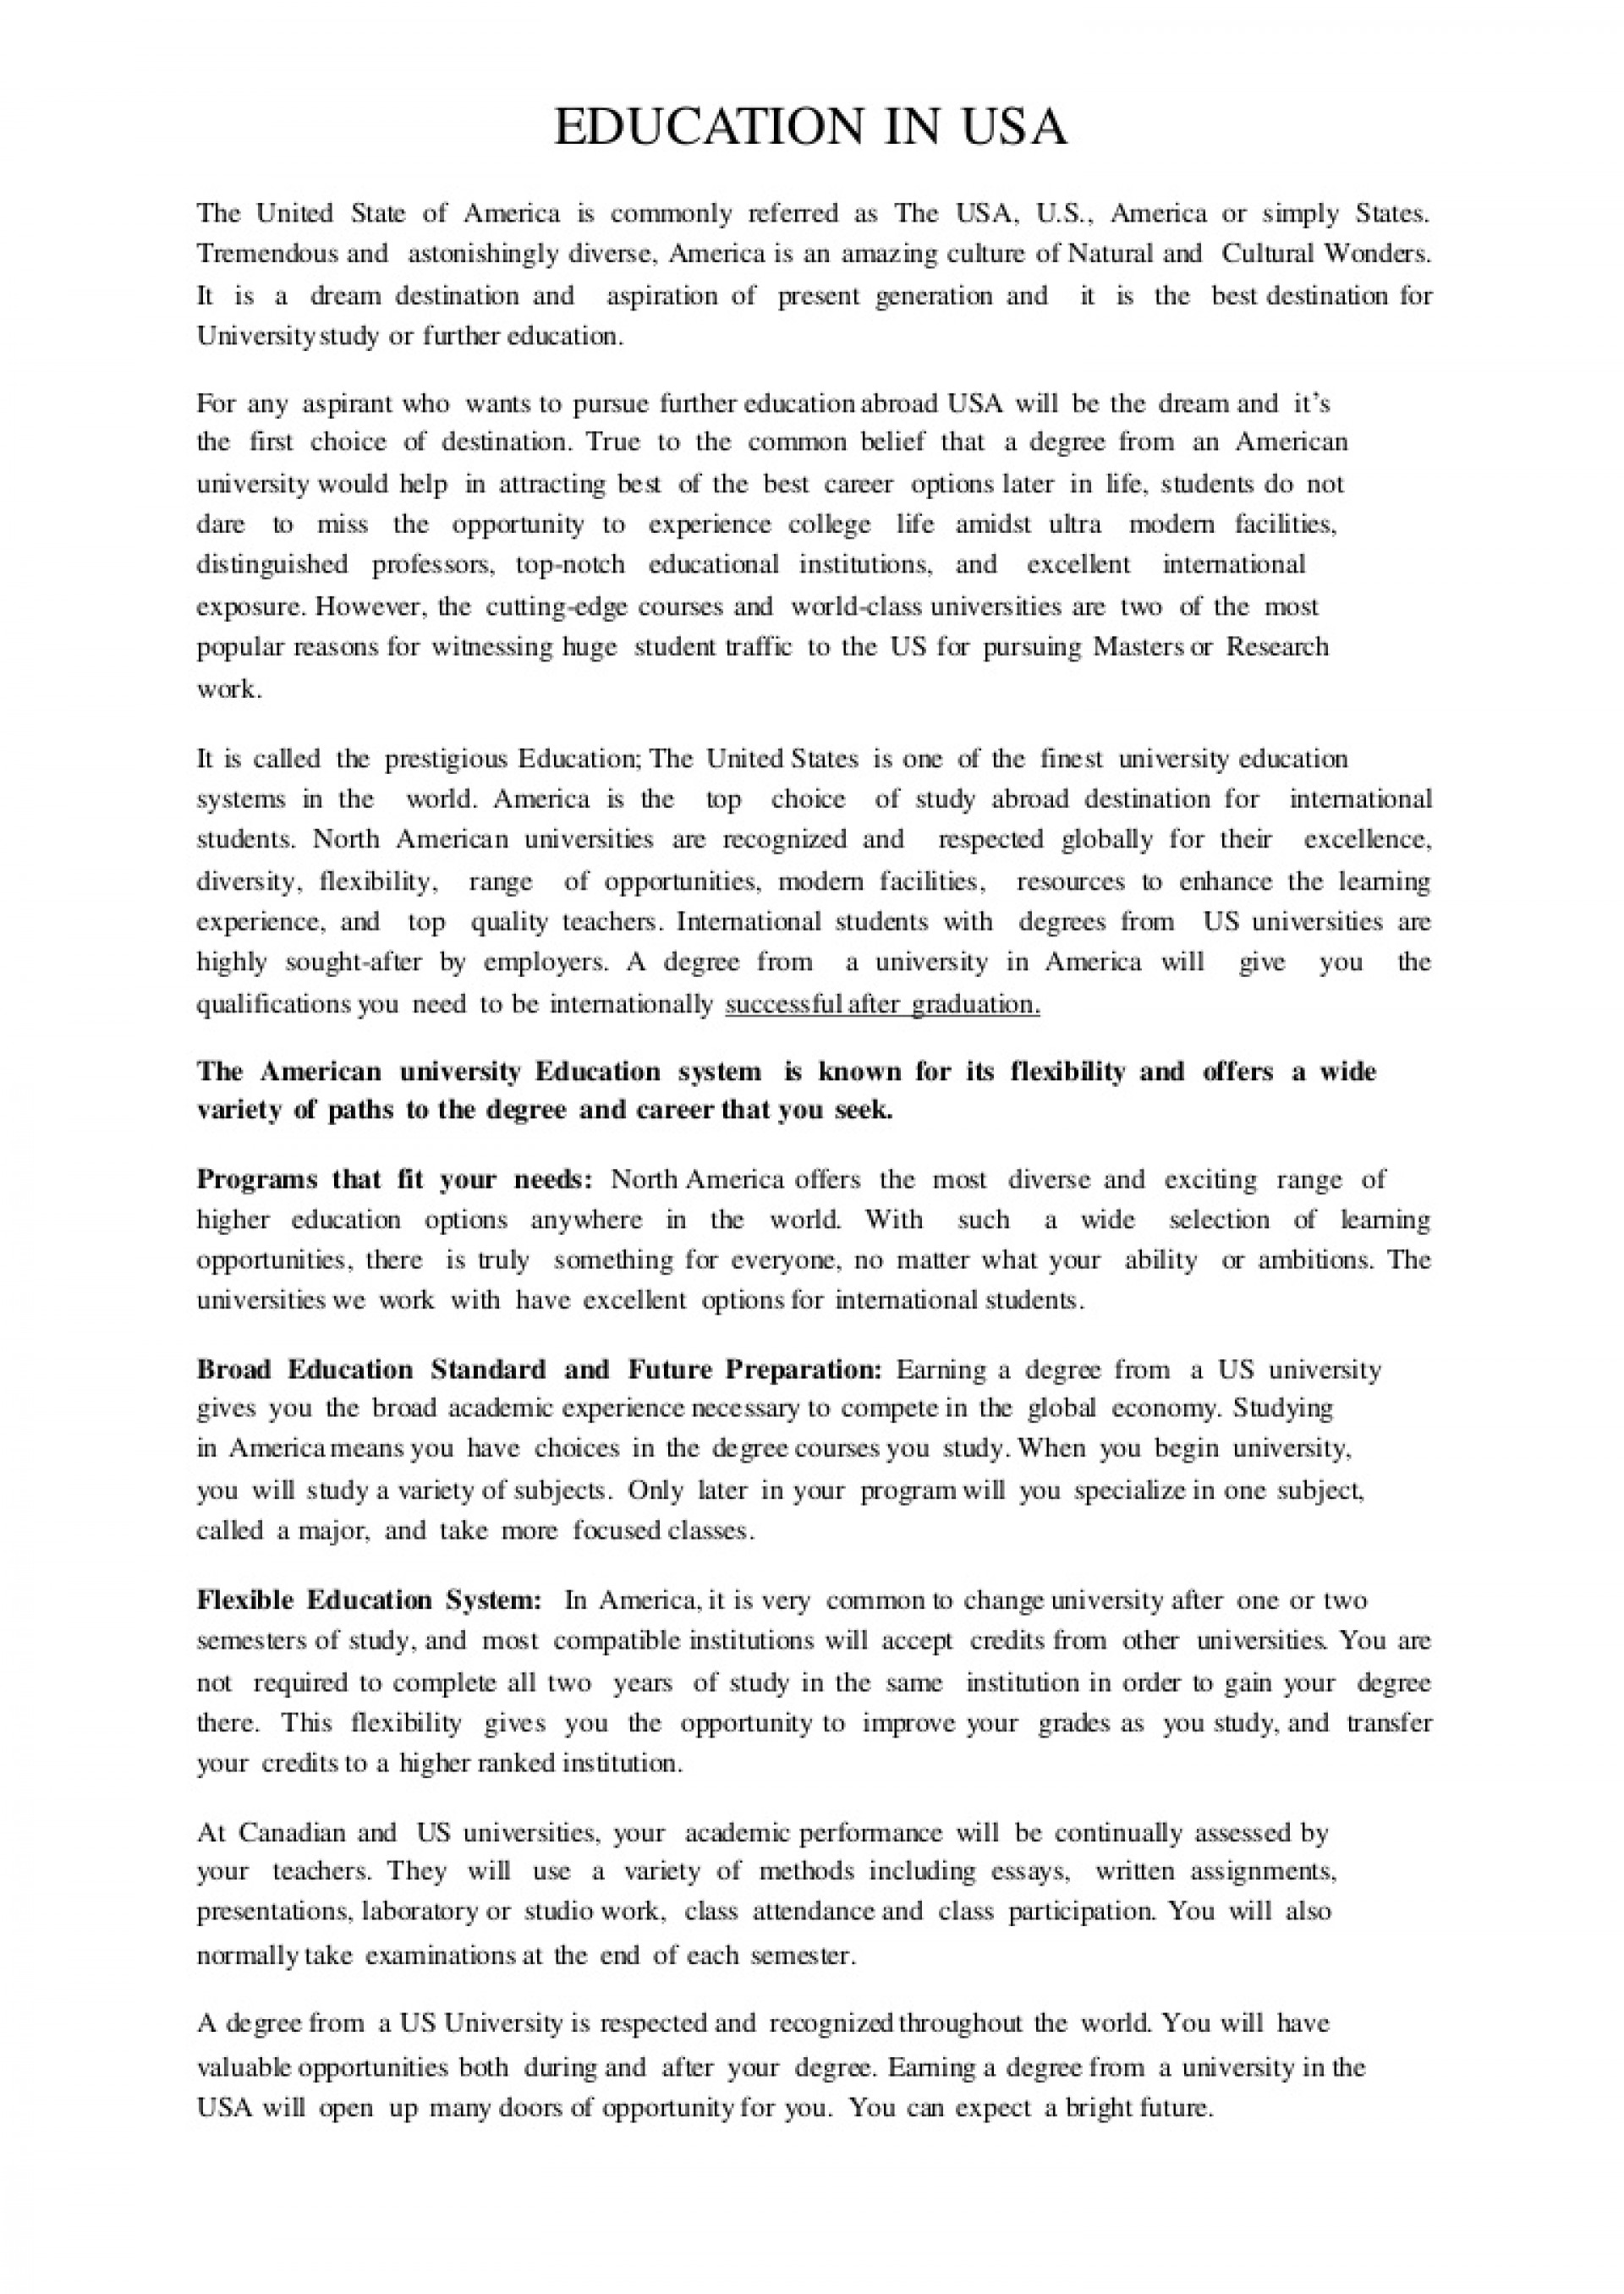 006 Essay Example Education In America Whb12 Jpg Pay For Investments Admission Higher Educationinusappt Phpapp01 Thumbn History Of Reform Problems Inequality Poverty And Free Stupendous What Is An American Ideas Definition Crevecoeur Summary 1920